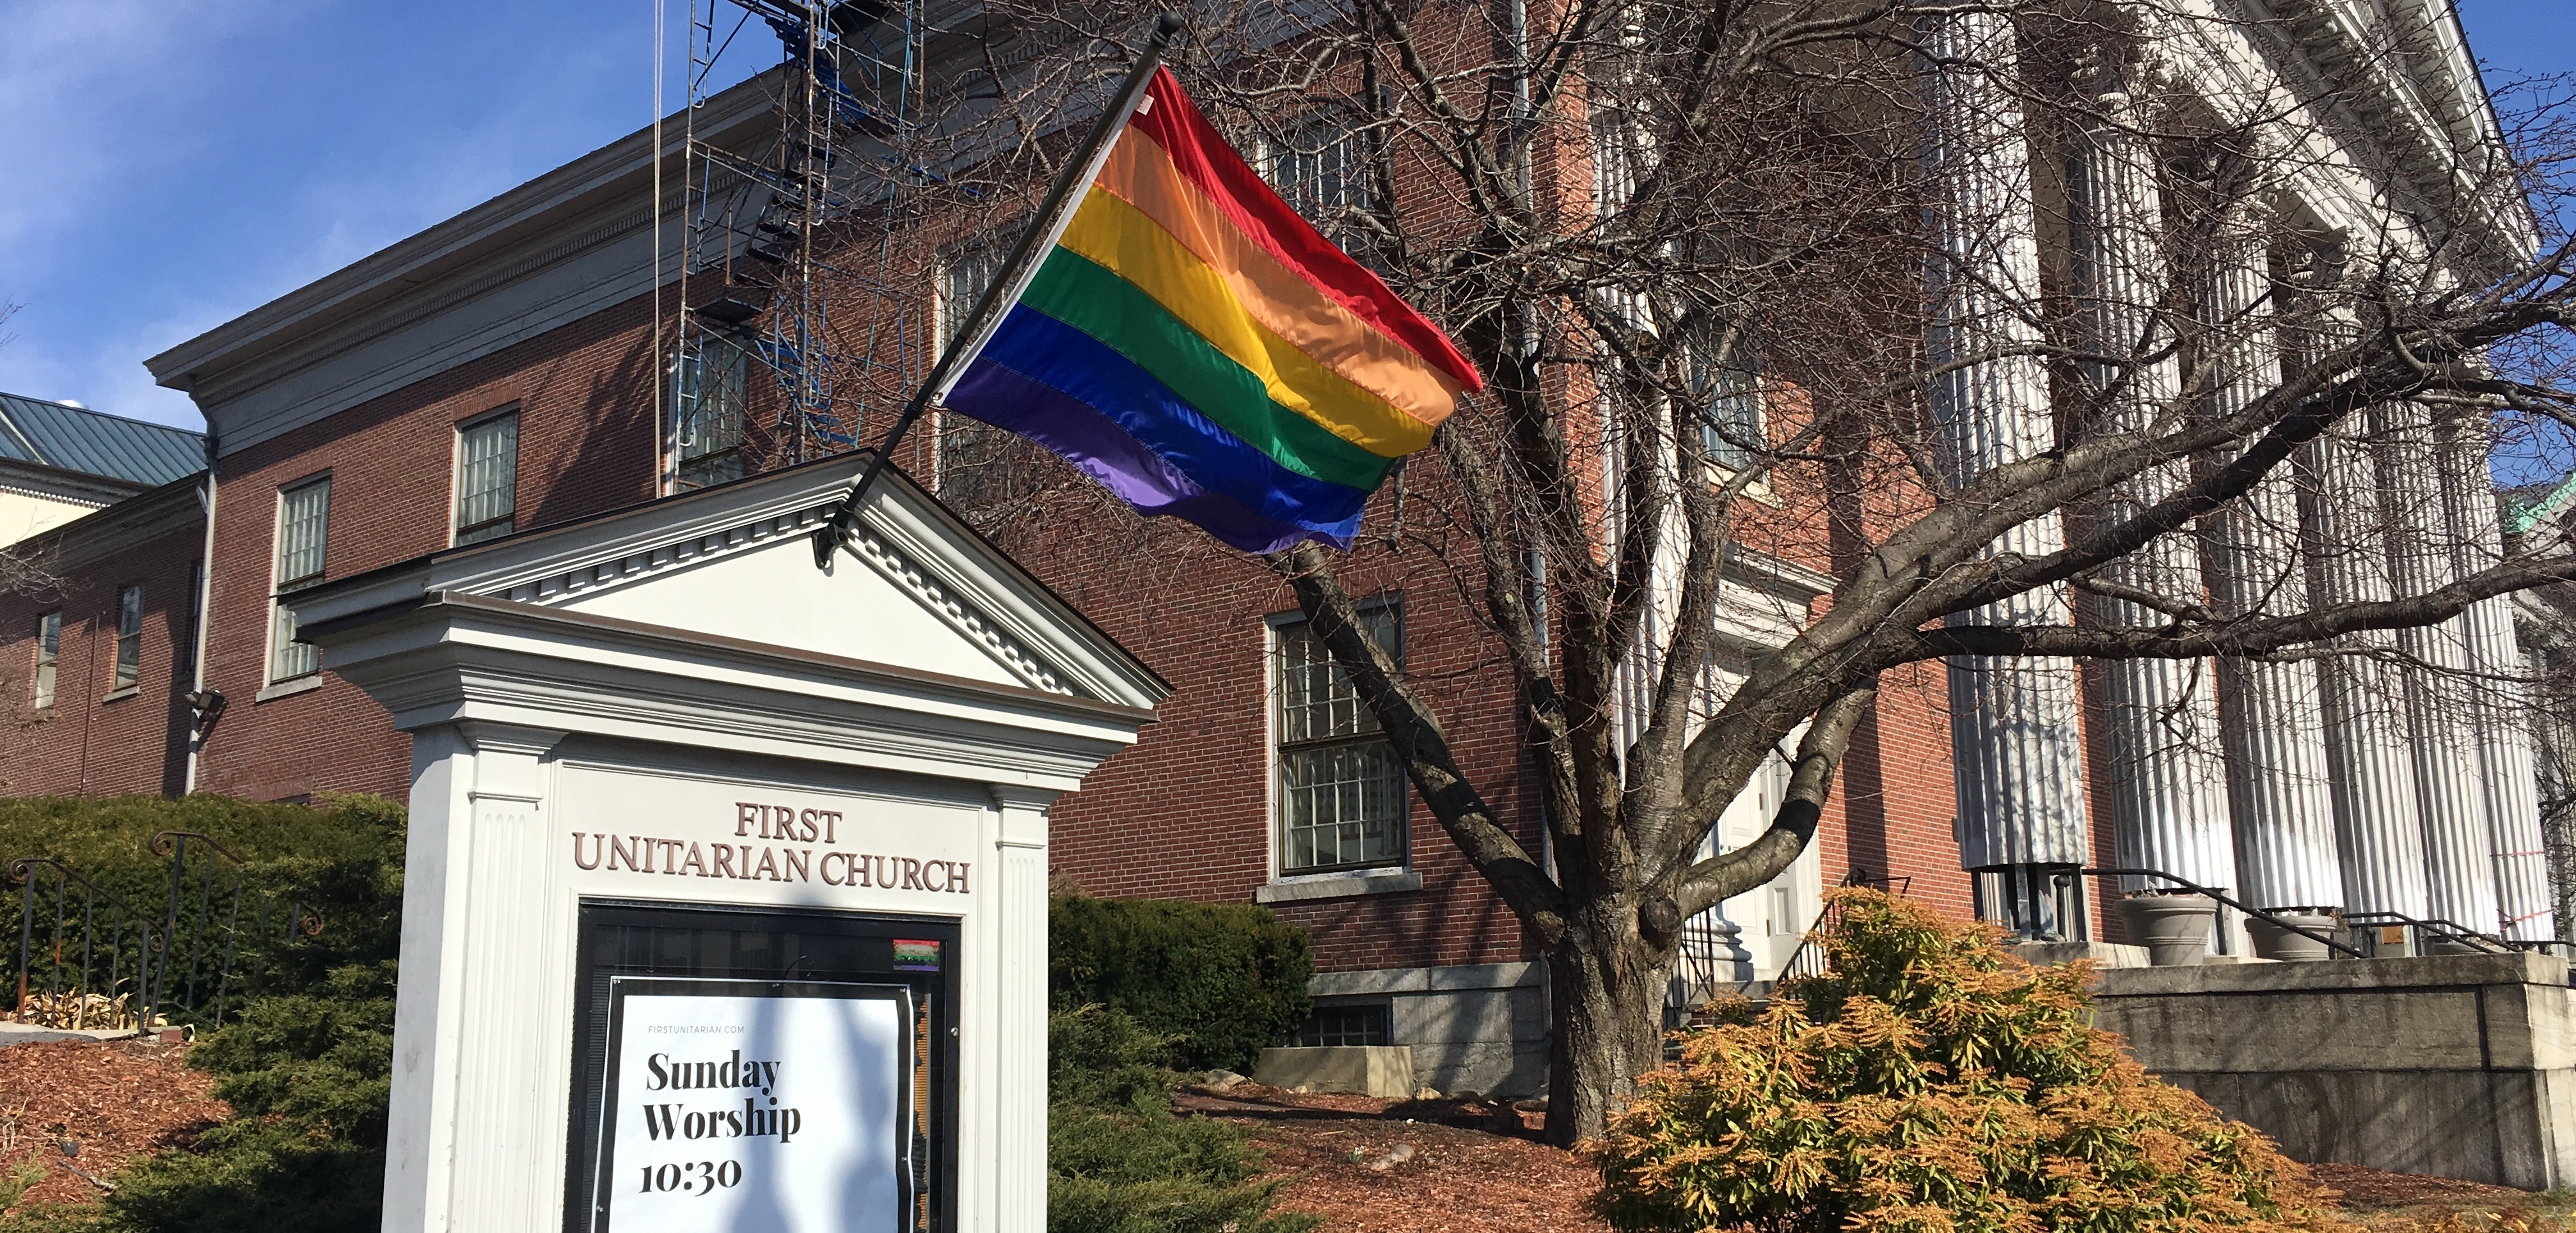 Wayside pulpit with rainbow flag in front of First Unitarian Church